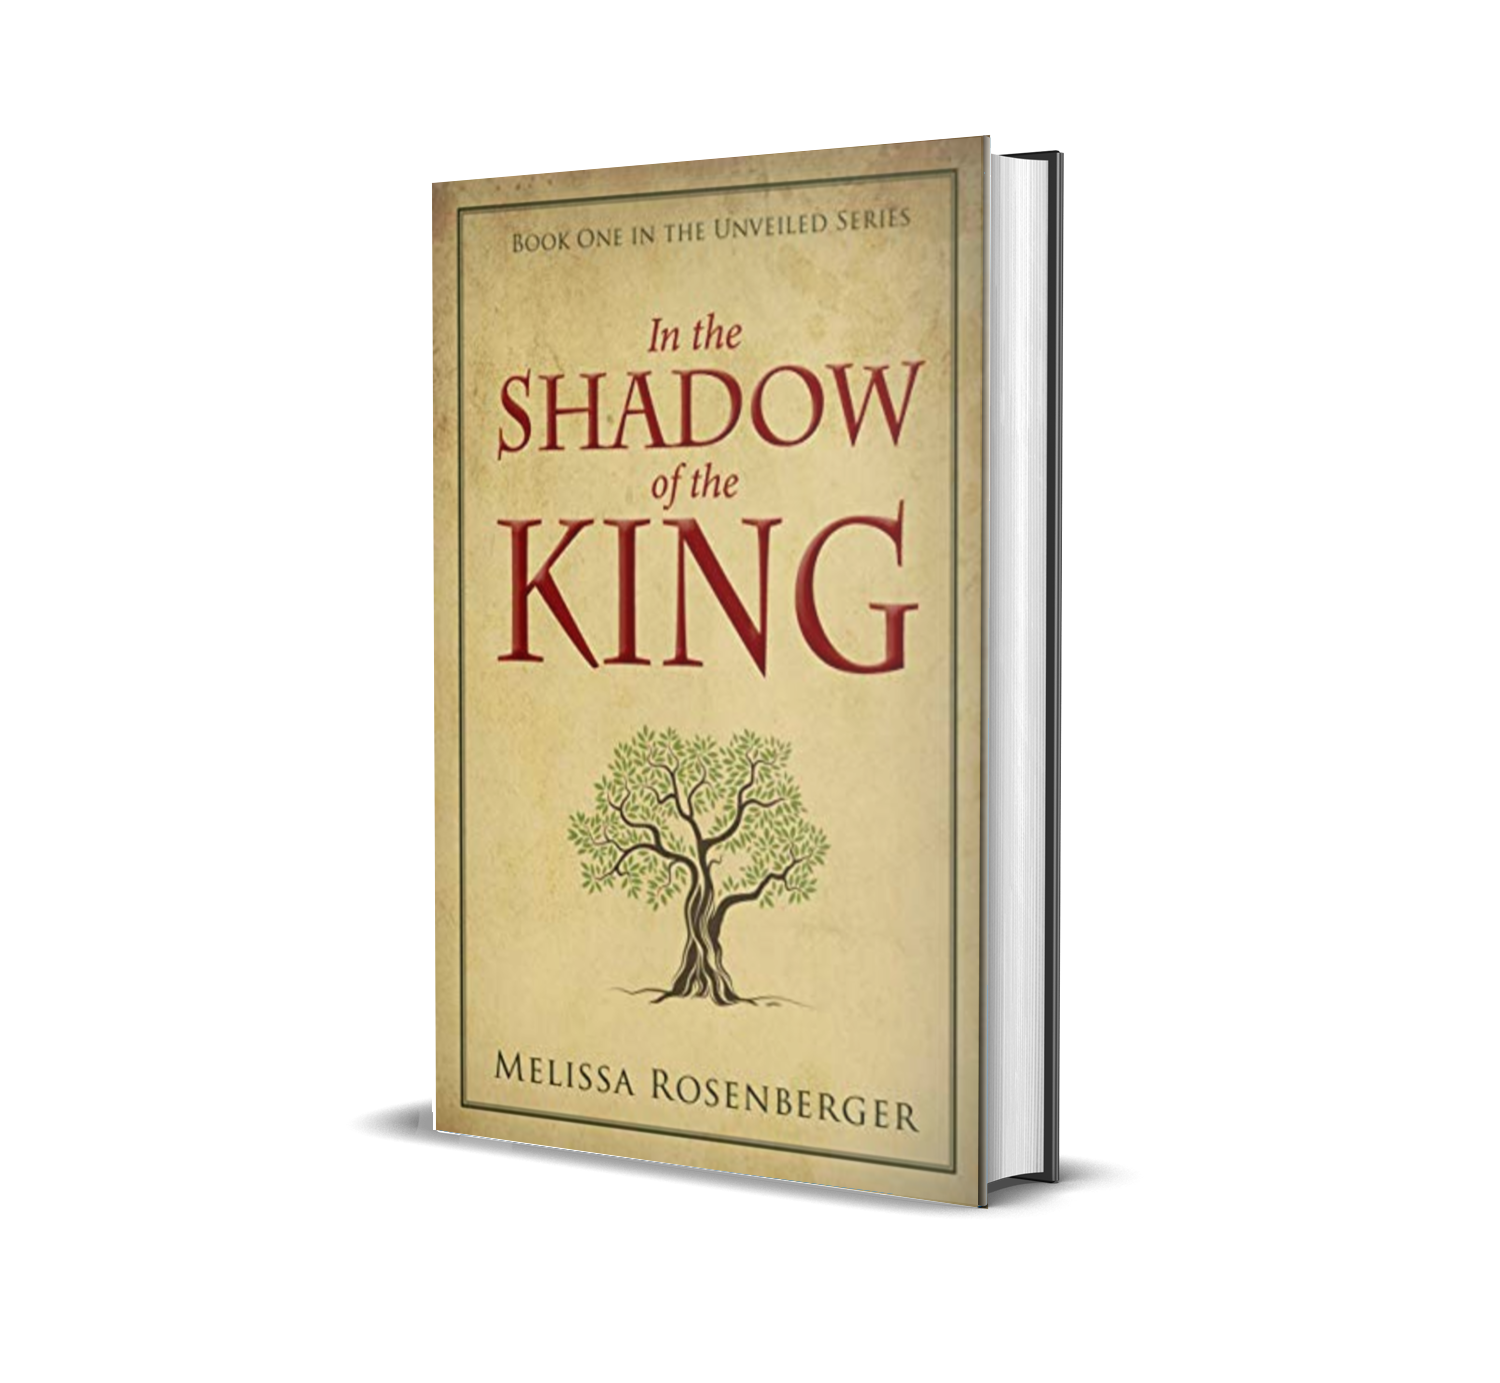 In the Shadow of the King  by Melissa Rosenberger